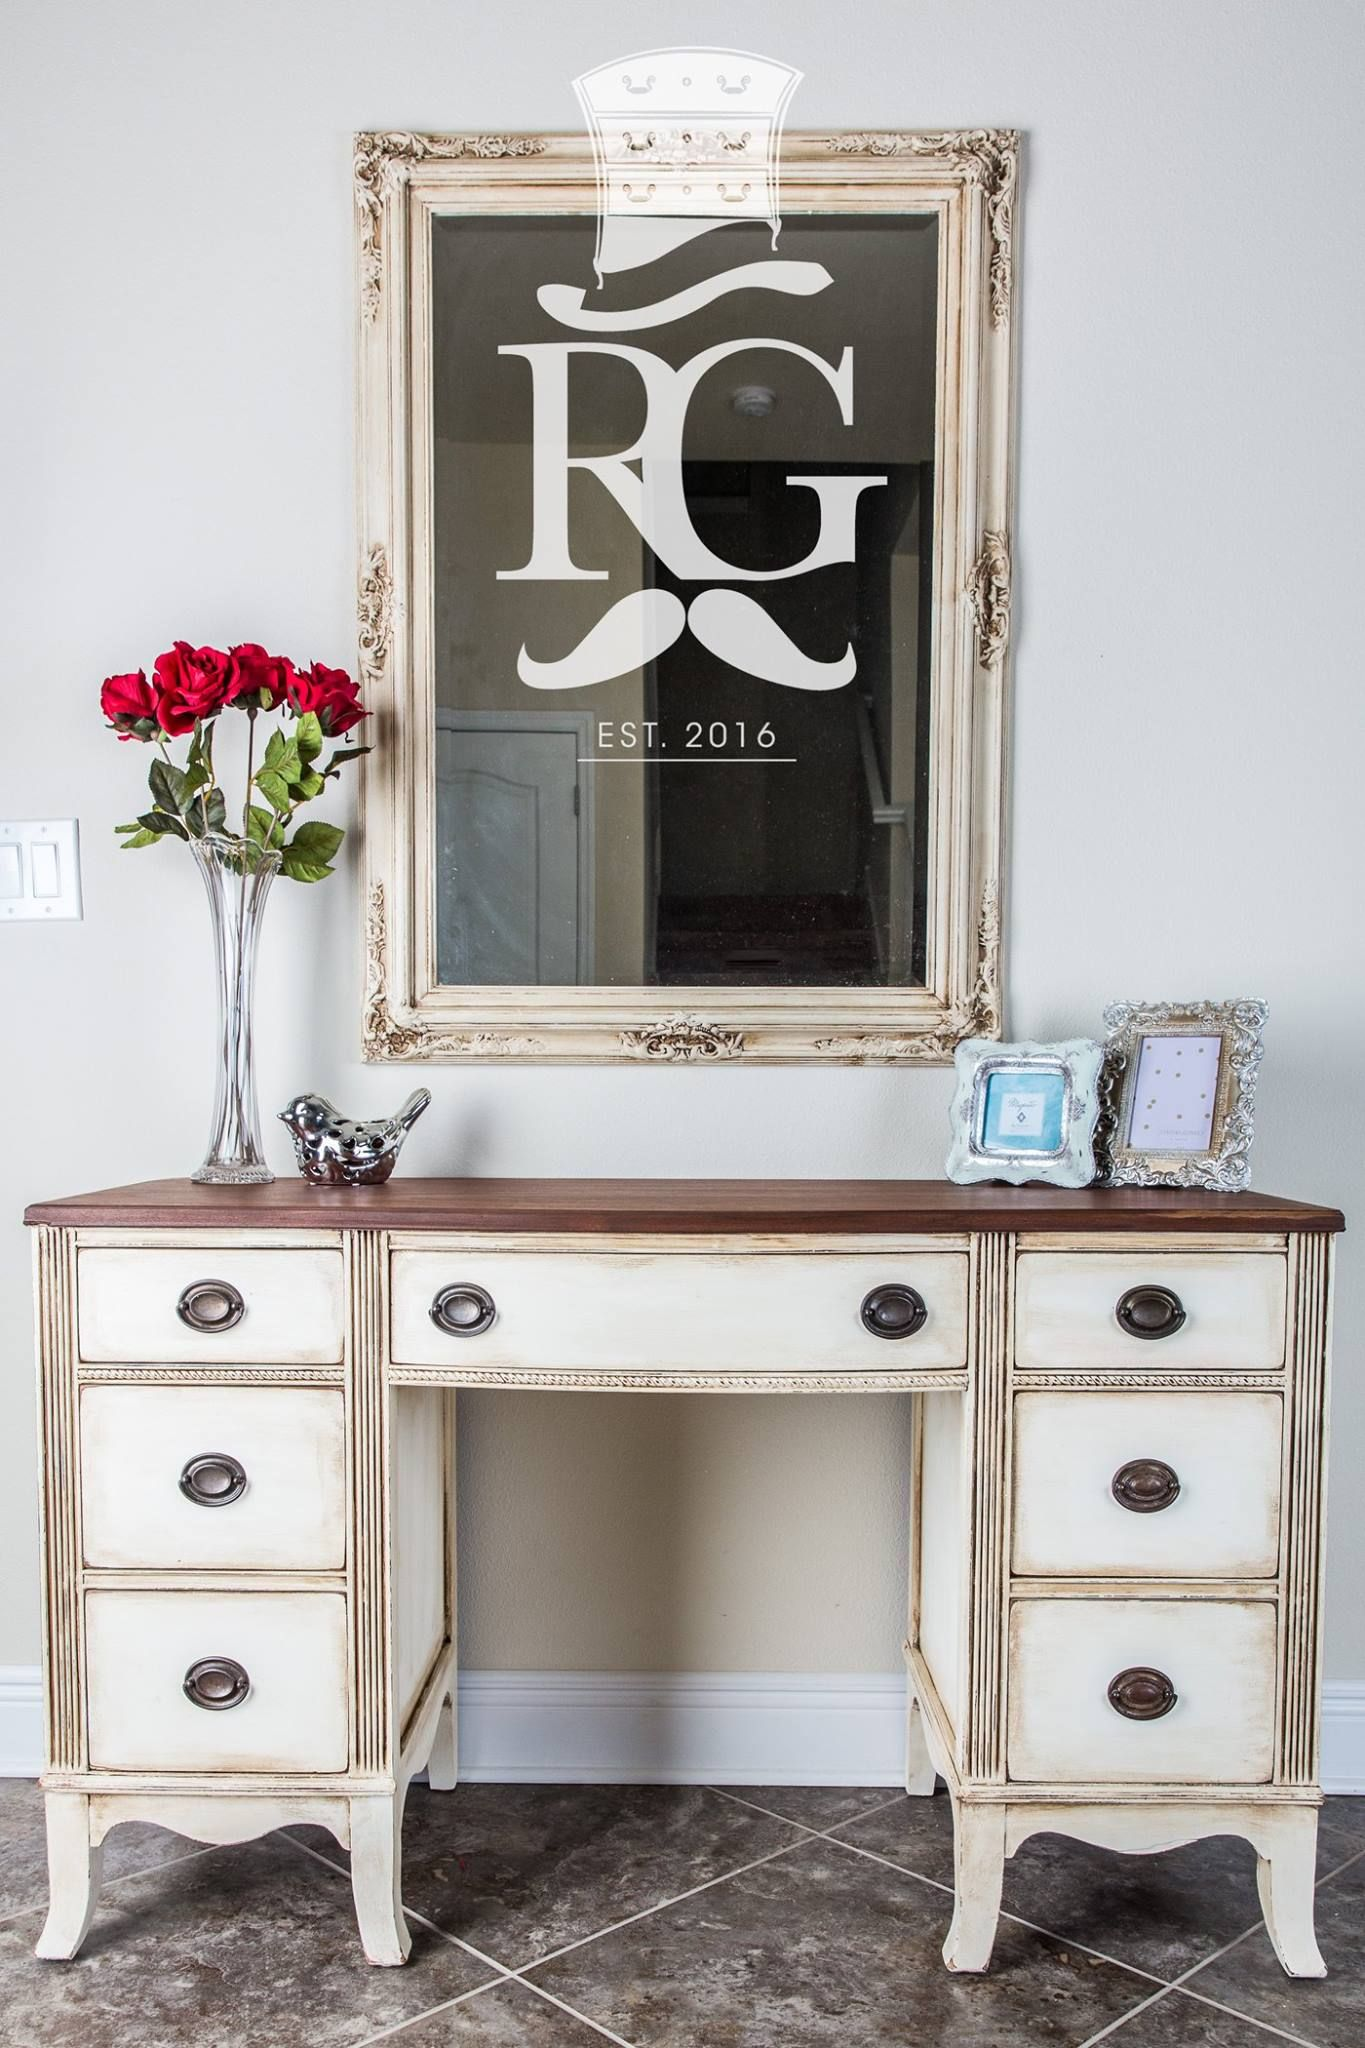 Painted Vanity Furniture: Mirror & Desk / Vanity Painted In Annie Sloan Chalk Paint